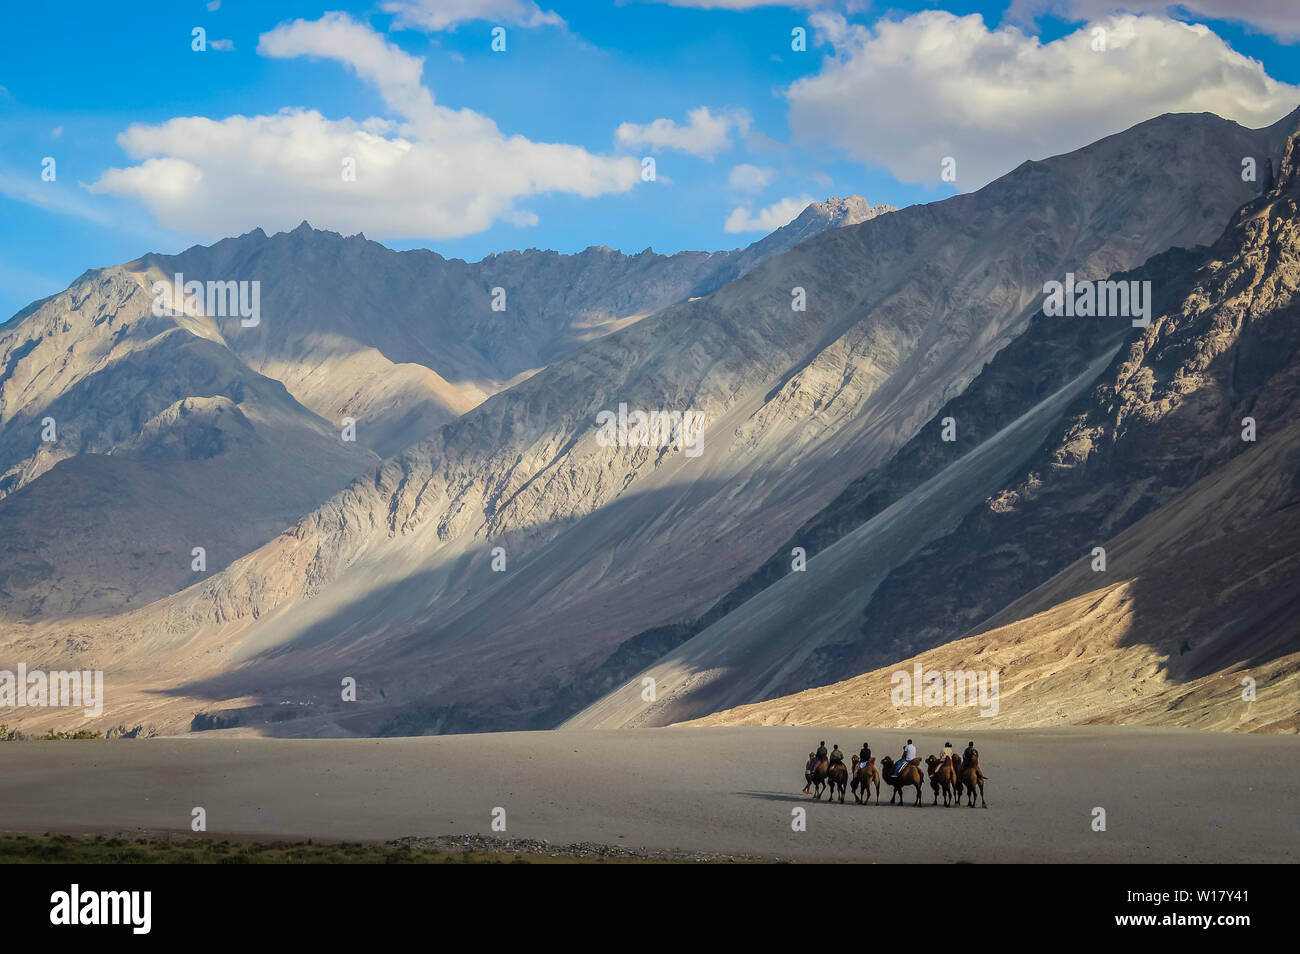 Camel ride in the cold desert of Ladakh. Ladakh landscape with desert mountains and blue sky - Stock Image